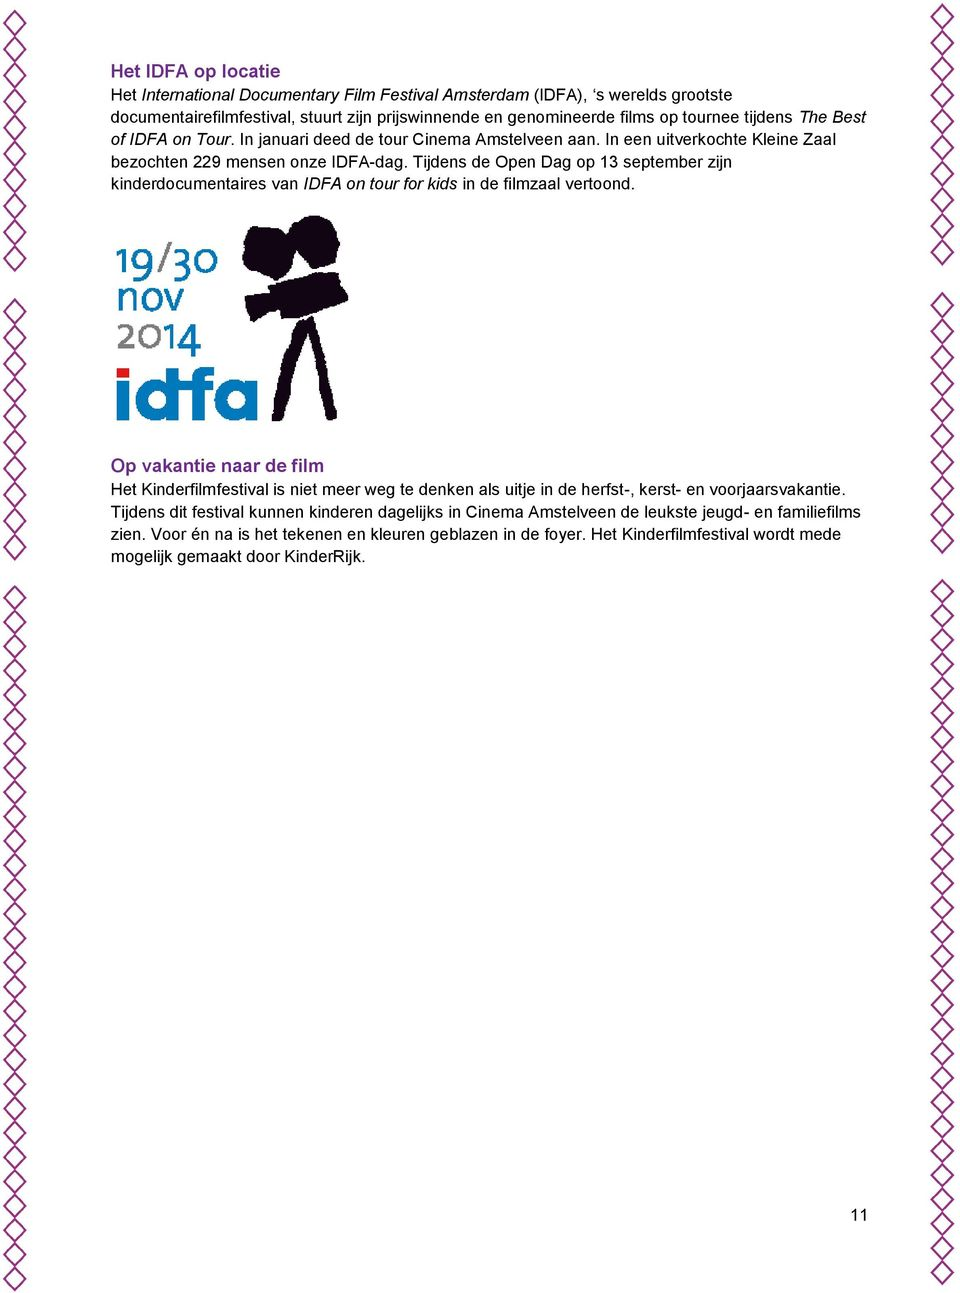 Tijdens de Open Dag op 13 september zijn kinderdocumentaires van IDFA on tour for kids in de filmzaal vertoond.